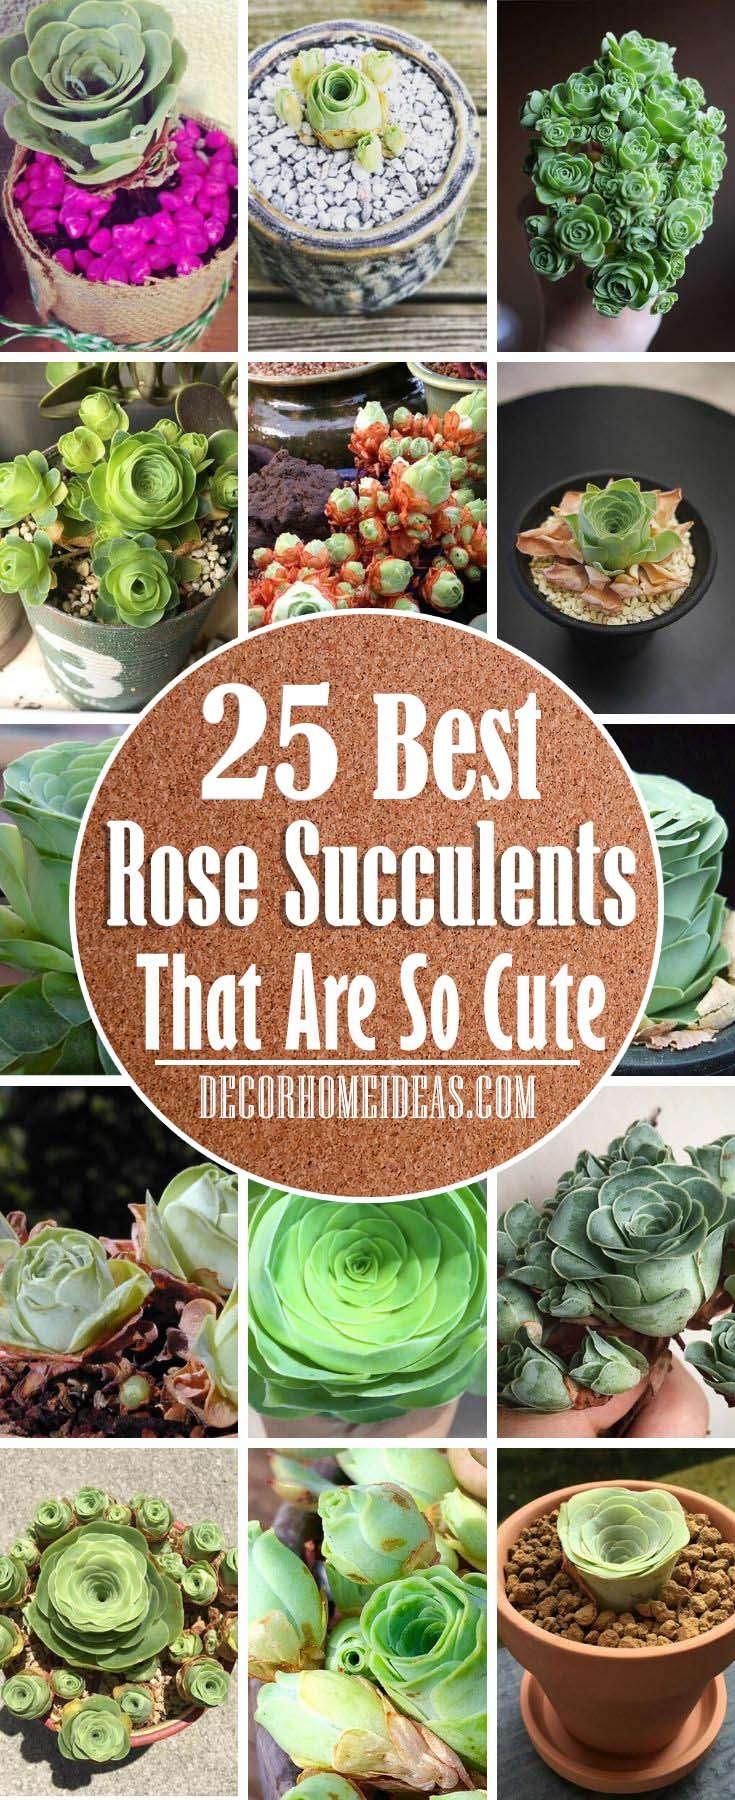 Best Rose Succulents. Are you in love with succulents? Well, these amazingly beautiful rose succulents that we have listed here are your dream come true #succulent #garden #rose #decorhomeideas